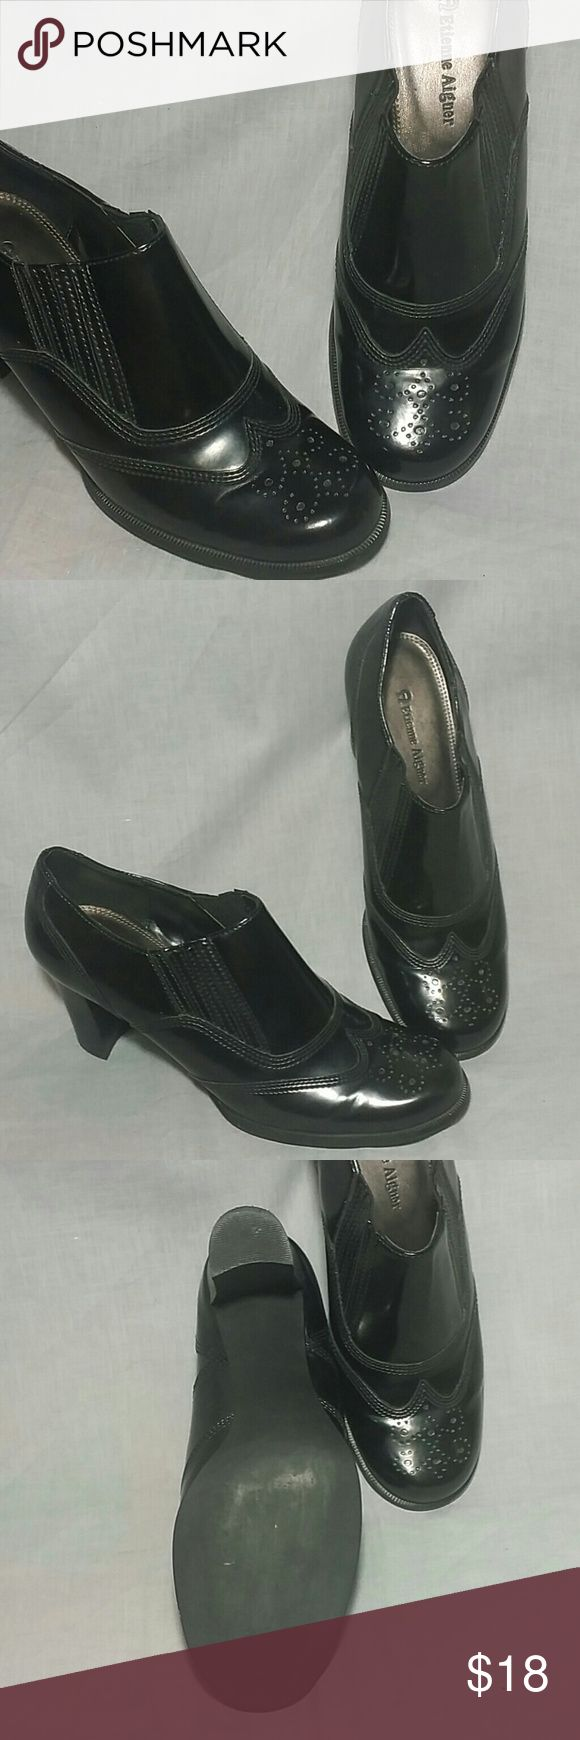 "Etienne Aigner Dress Shoes Black Size 7 M Heels Women's Etienne Aigner Dress Shoes Black Size 7 M Heels 3"". Item is in a good condition ALL MANMADE MATERIAL. Etienne Aigner Shoes Heels"